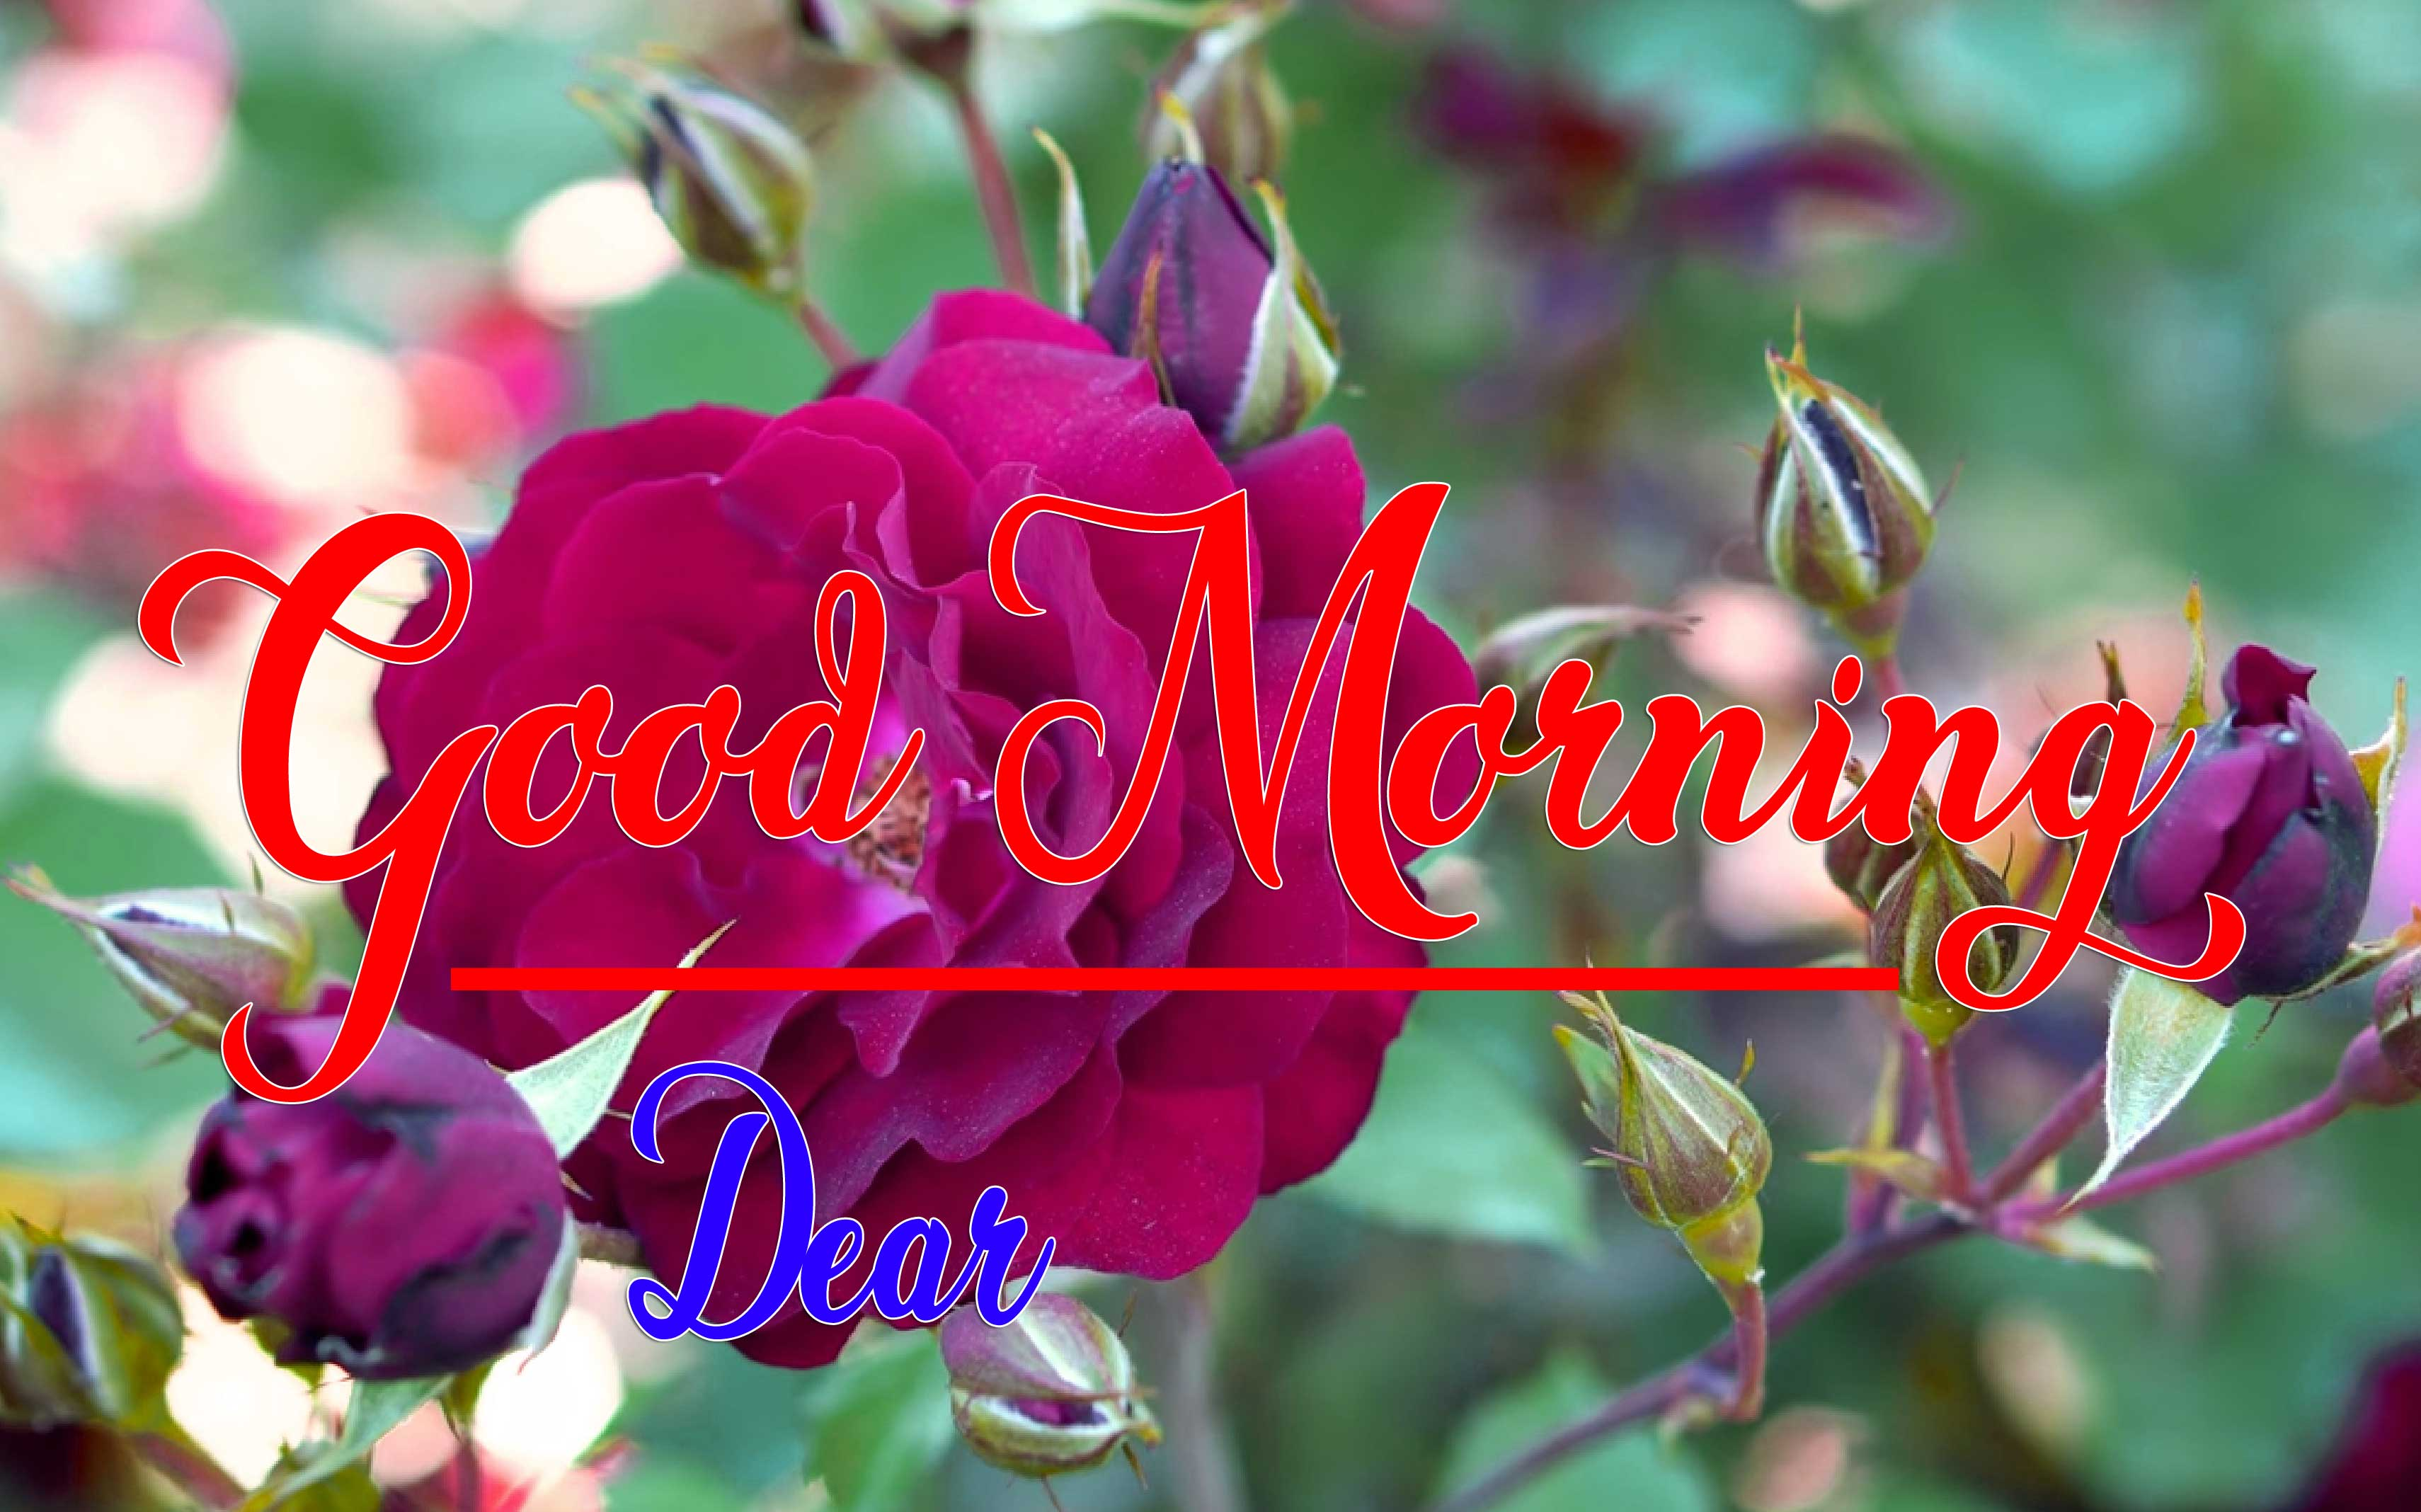 Rose Good Morning Wishes Images Pics Download